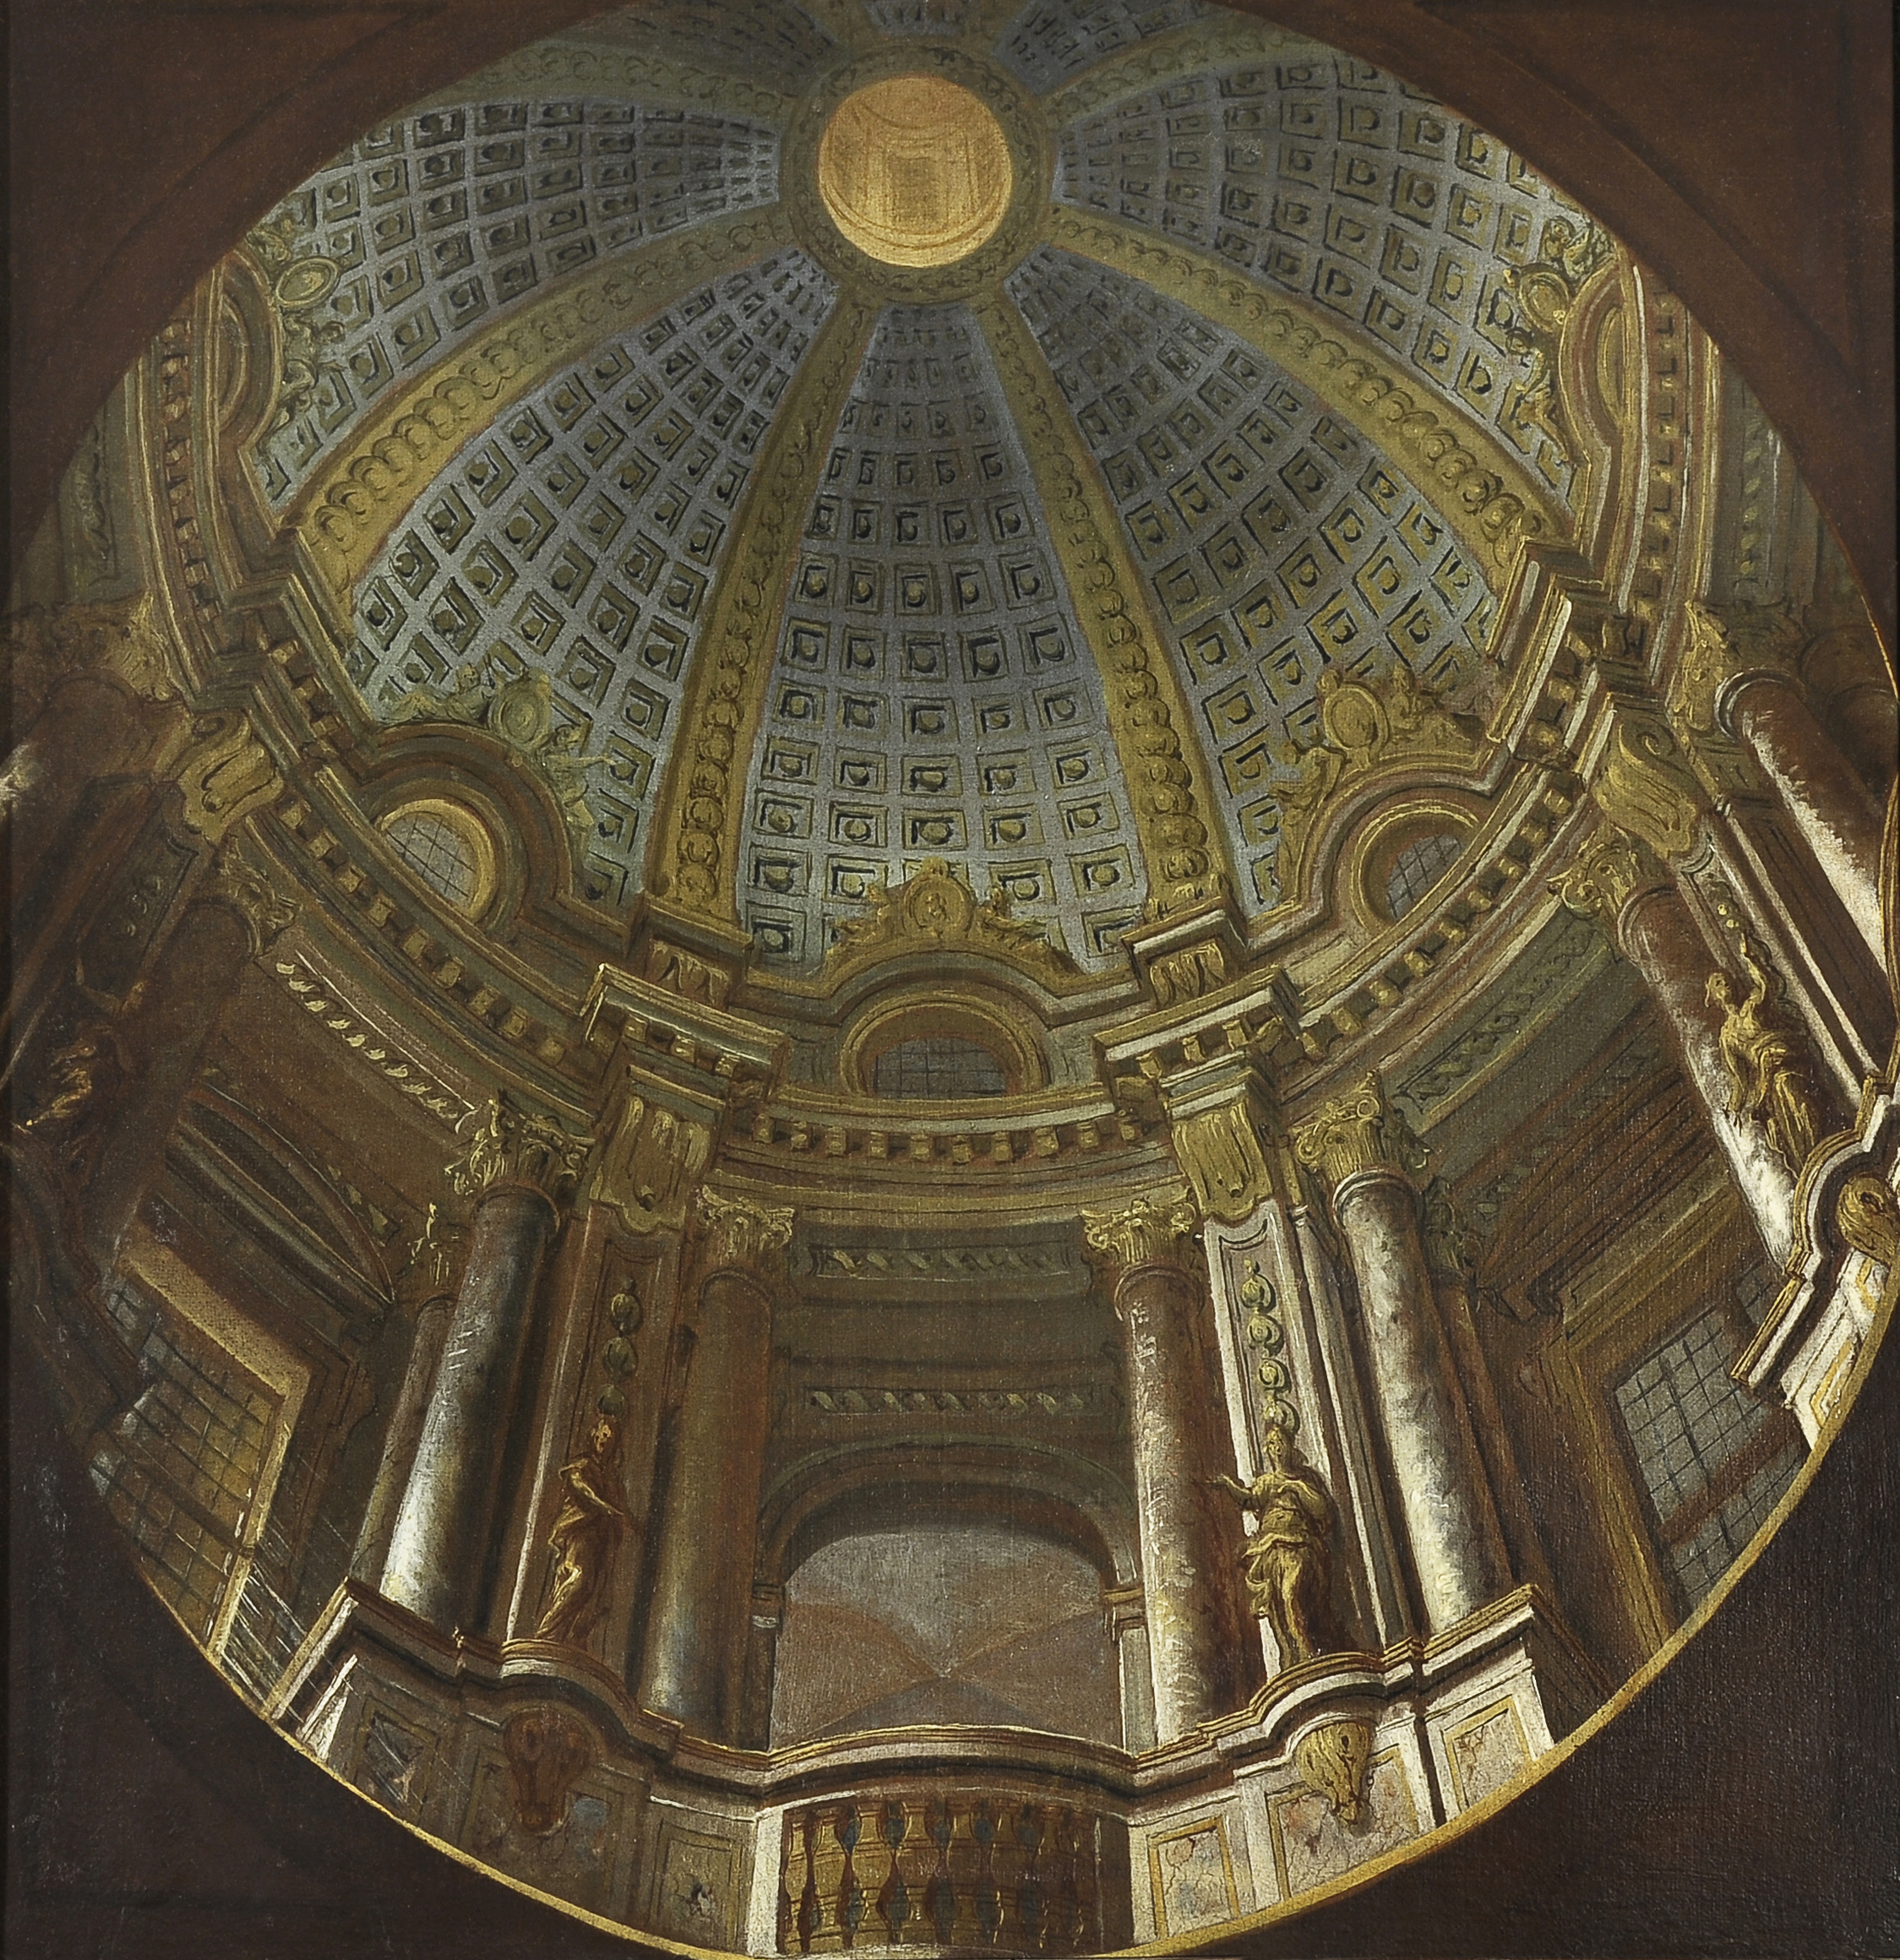 A view from below of an ornate dome, with columns and sculptures